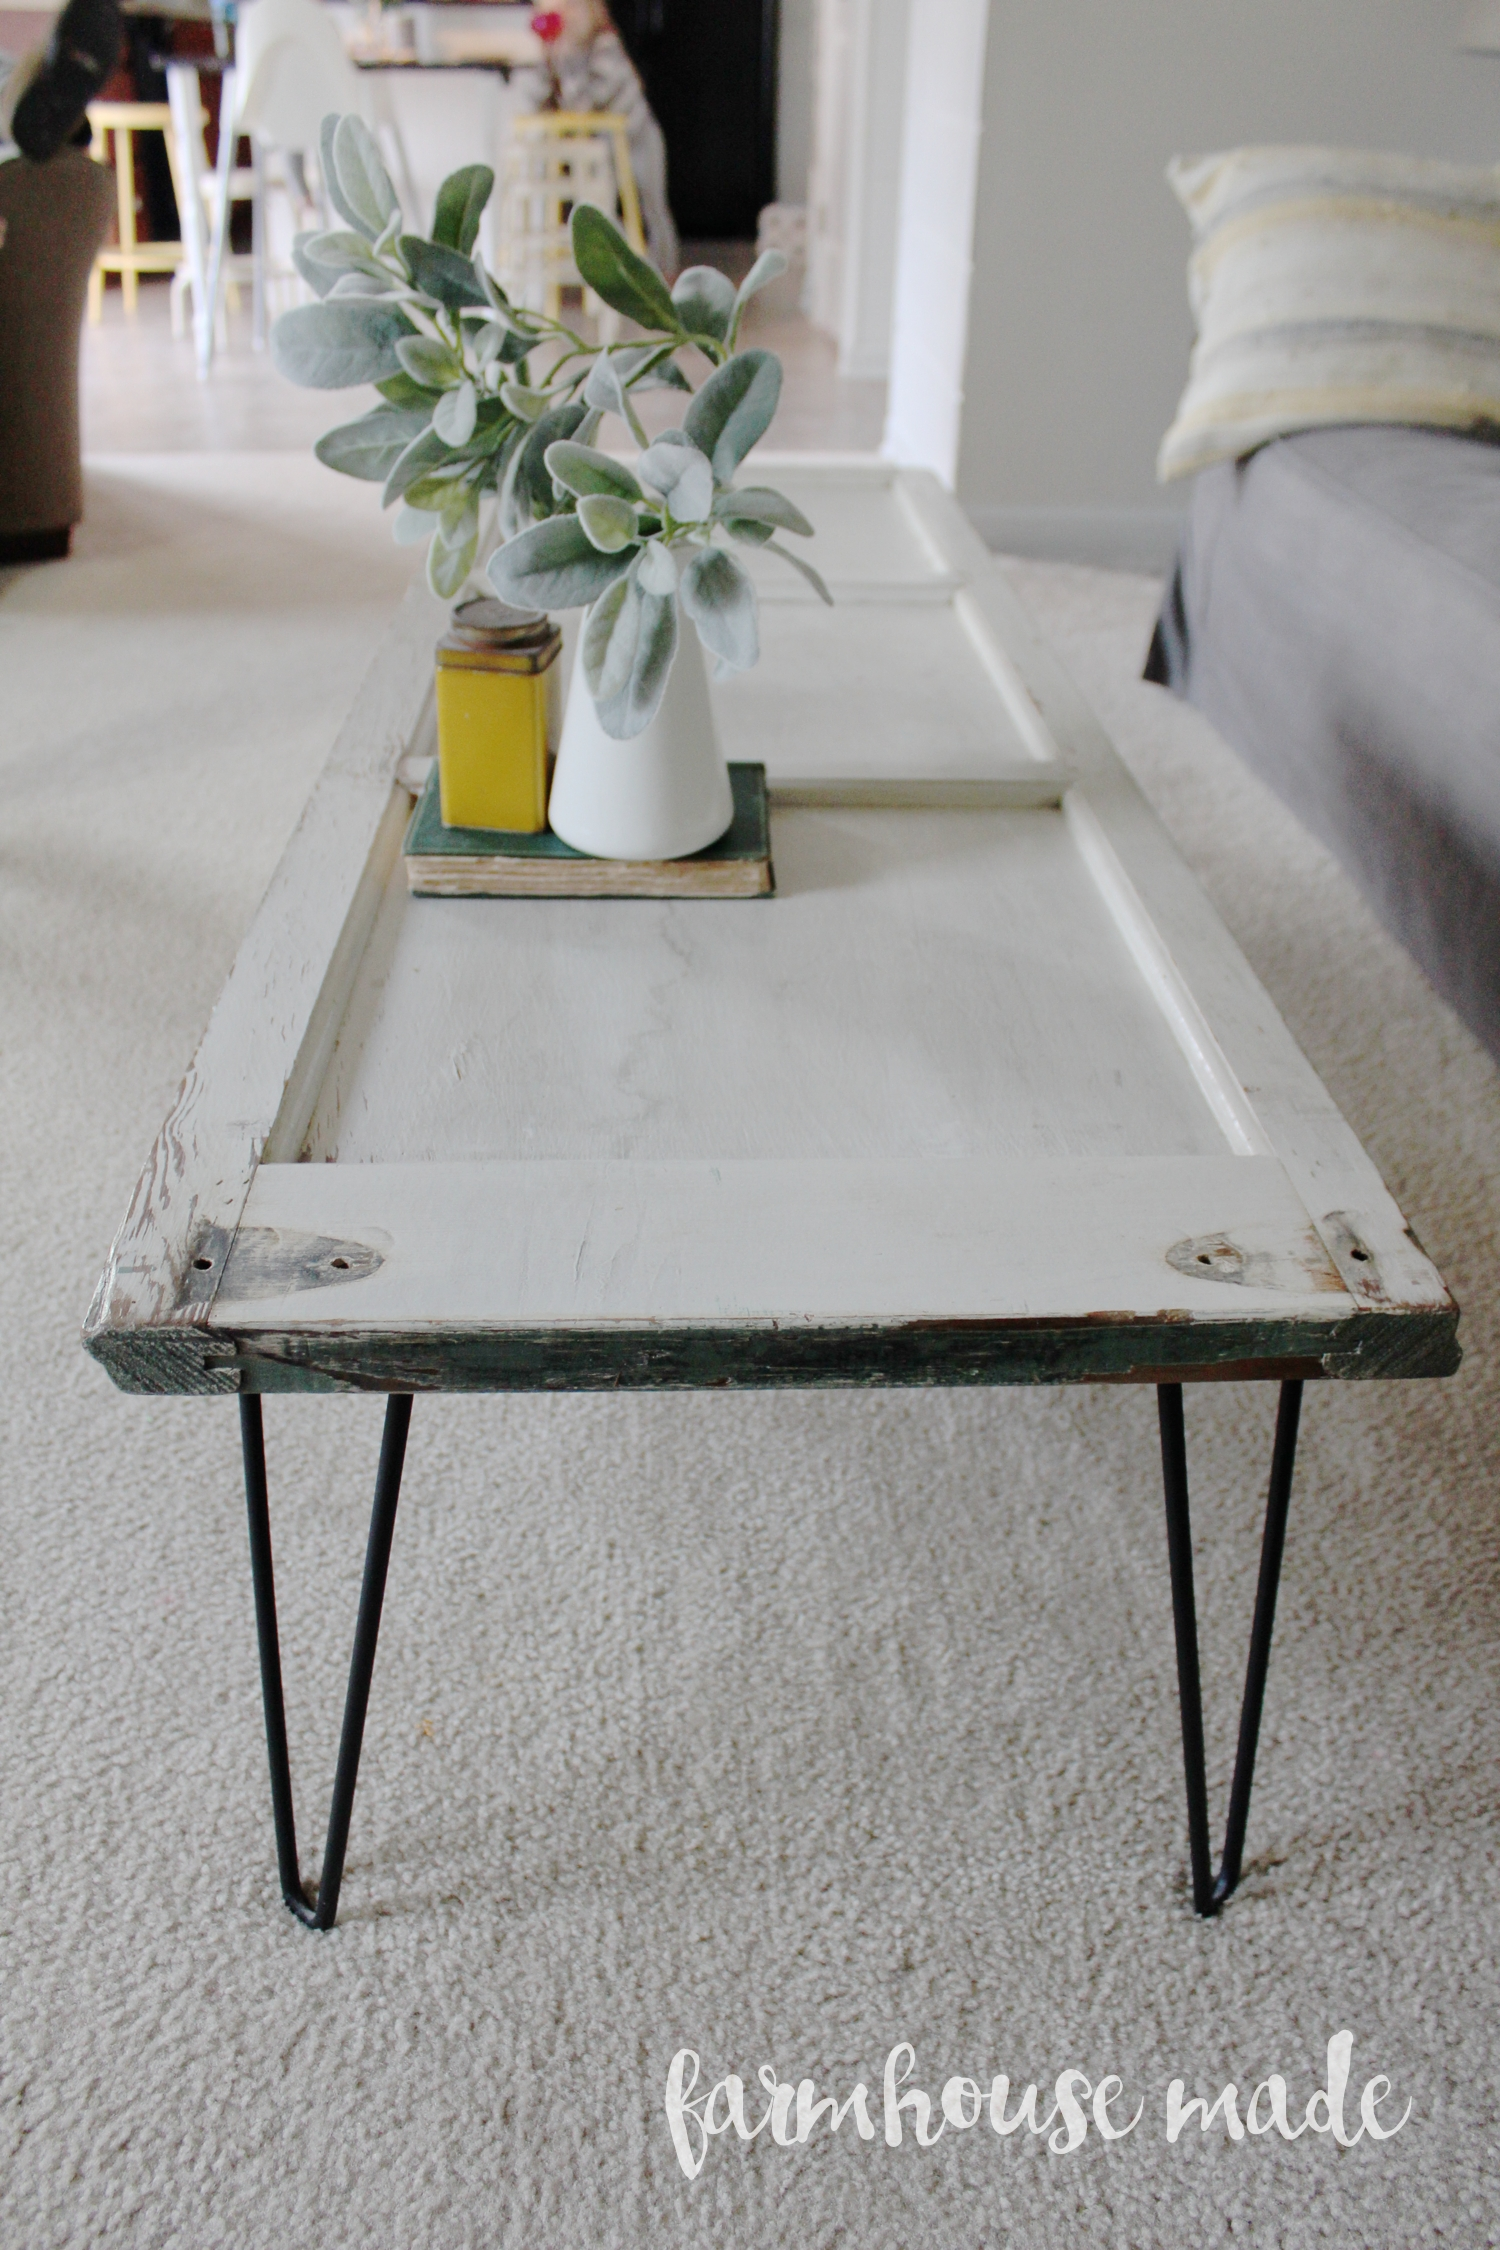 Top 5 DIYs To Add Farmhouse Style FARMHOUSE MADE